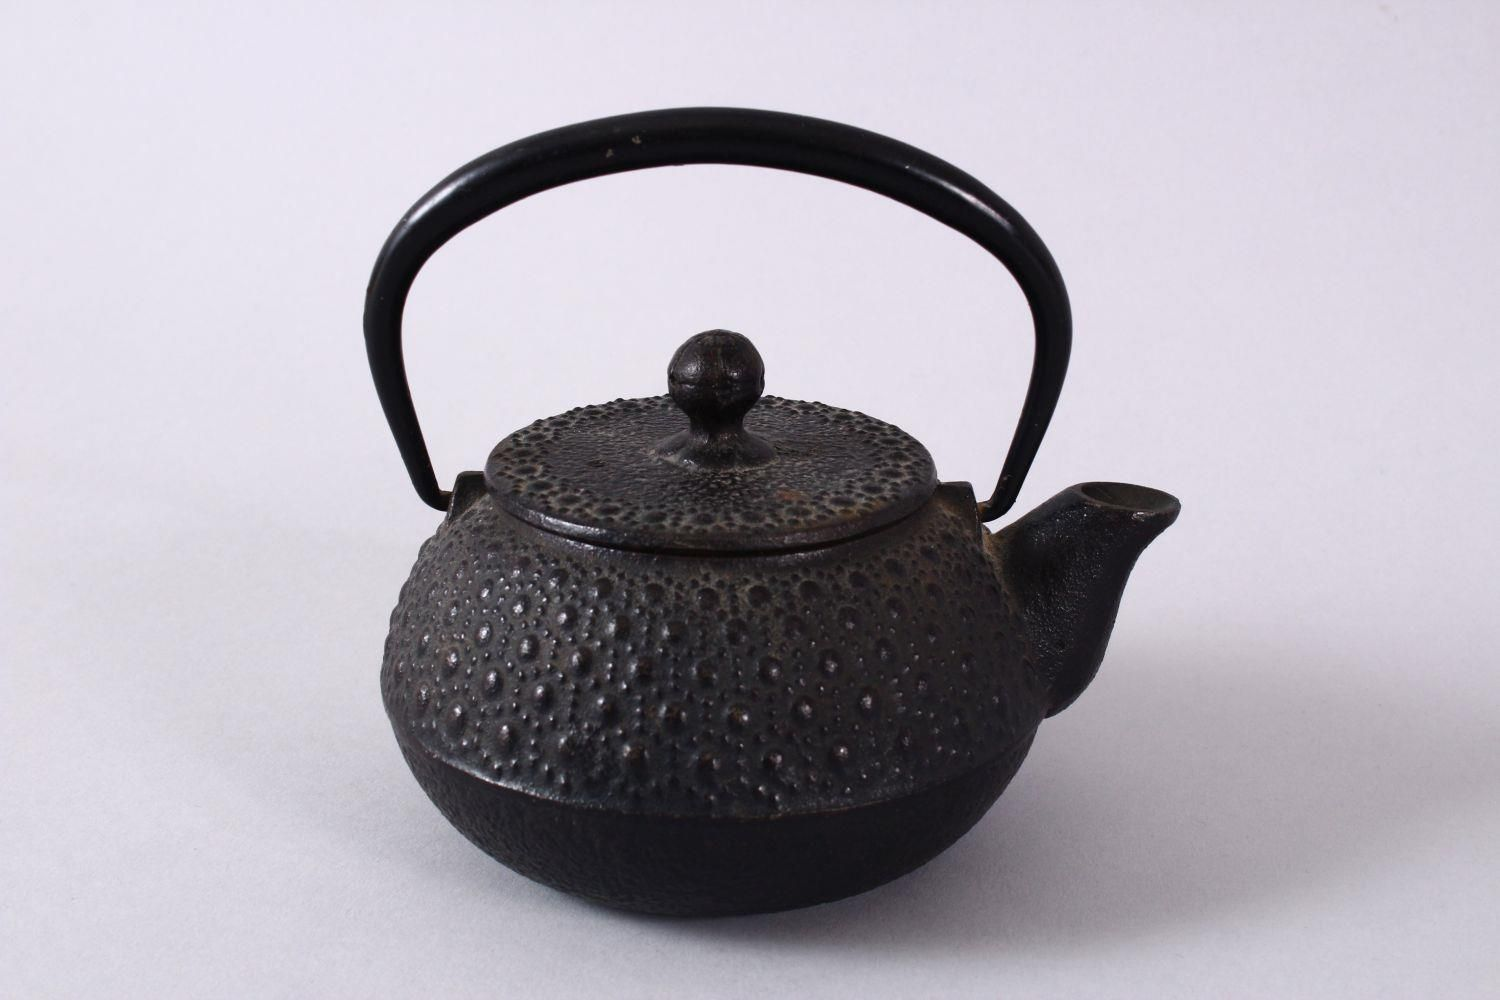 A JAPANESE IRON / METAL MOULDED TEAPOT & COVER, the body with moulded stud decoration, possibly iron - Image 3 of 5